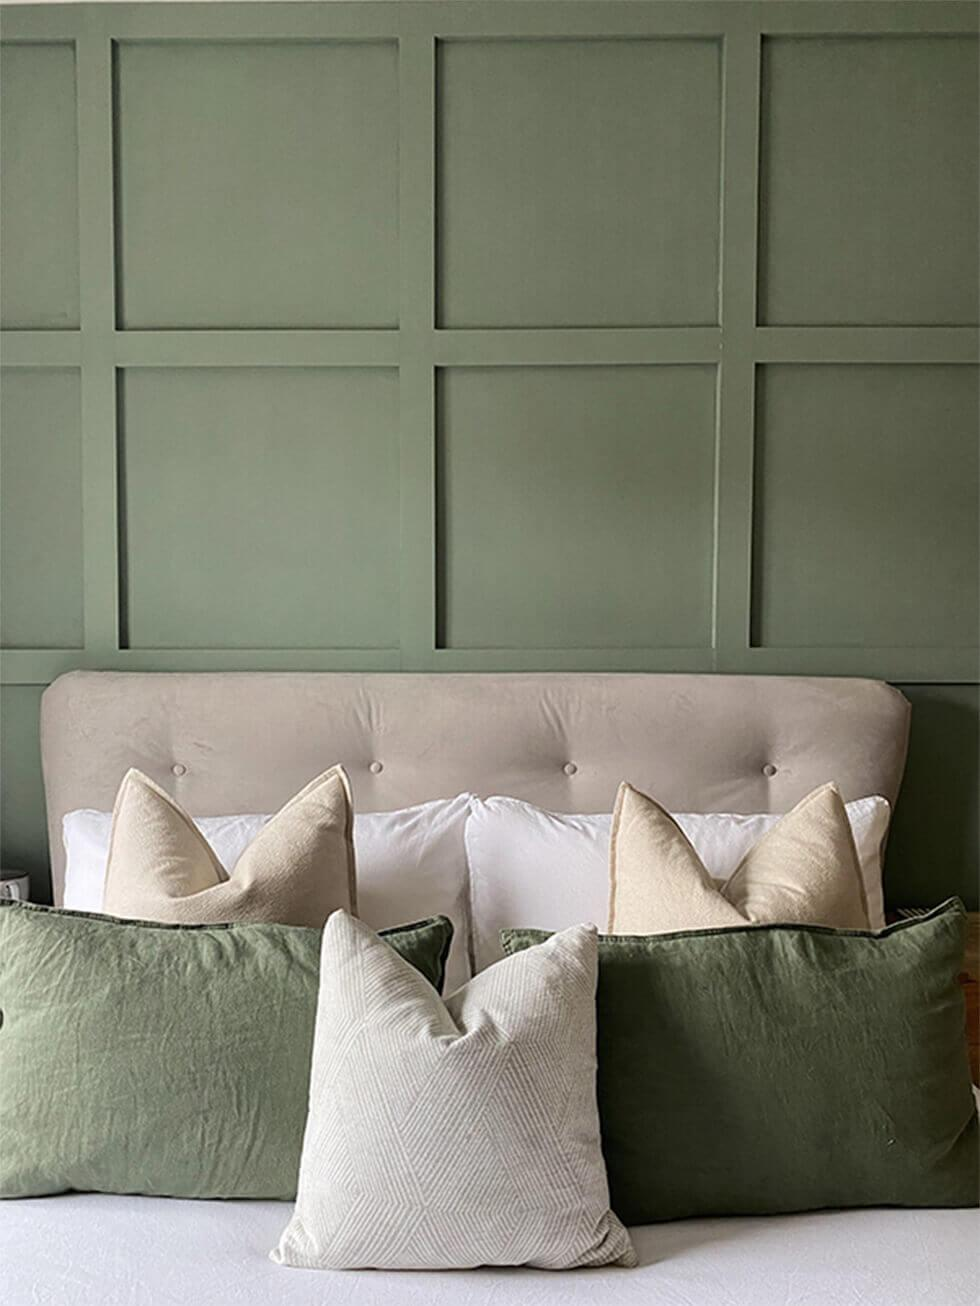 Close up shot of velvet bed headboard, wall panelling and cushions